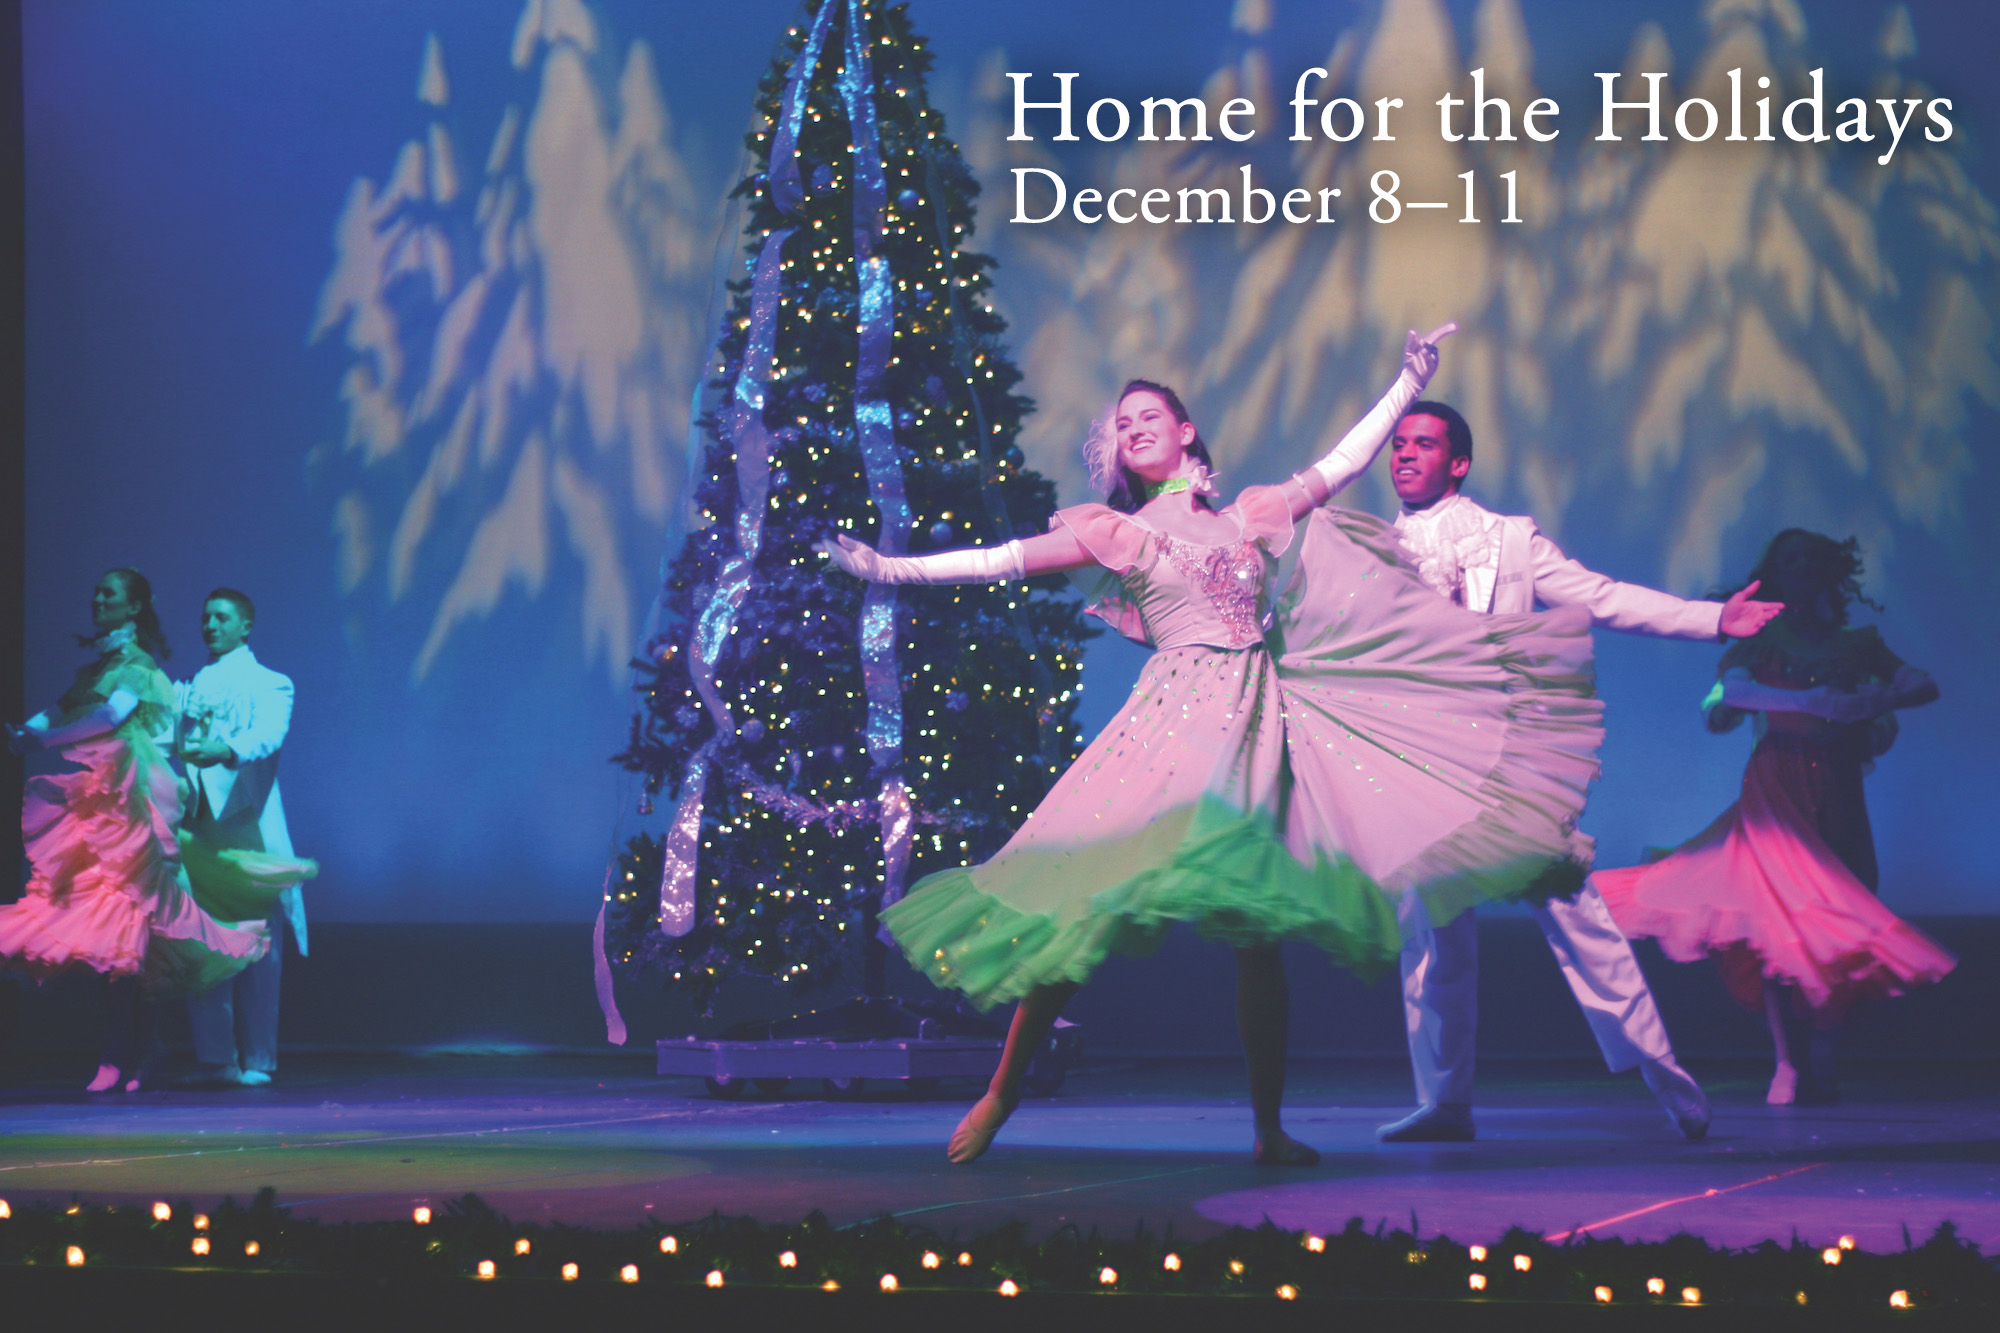 Home for the Holidays: December 8th through December 11th